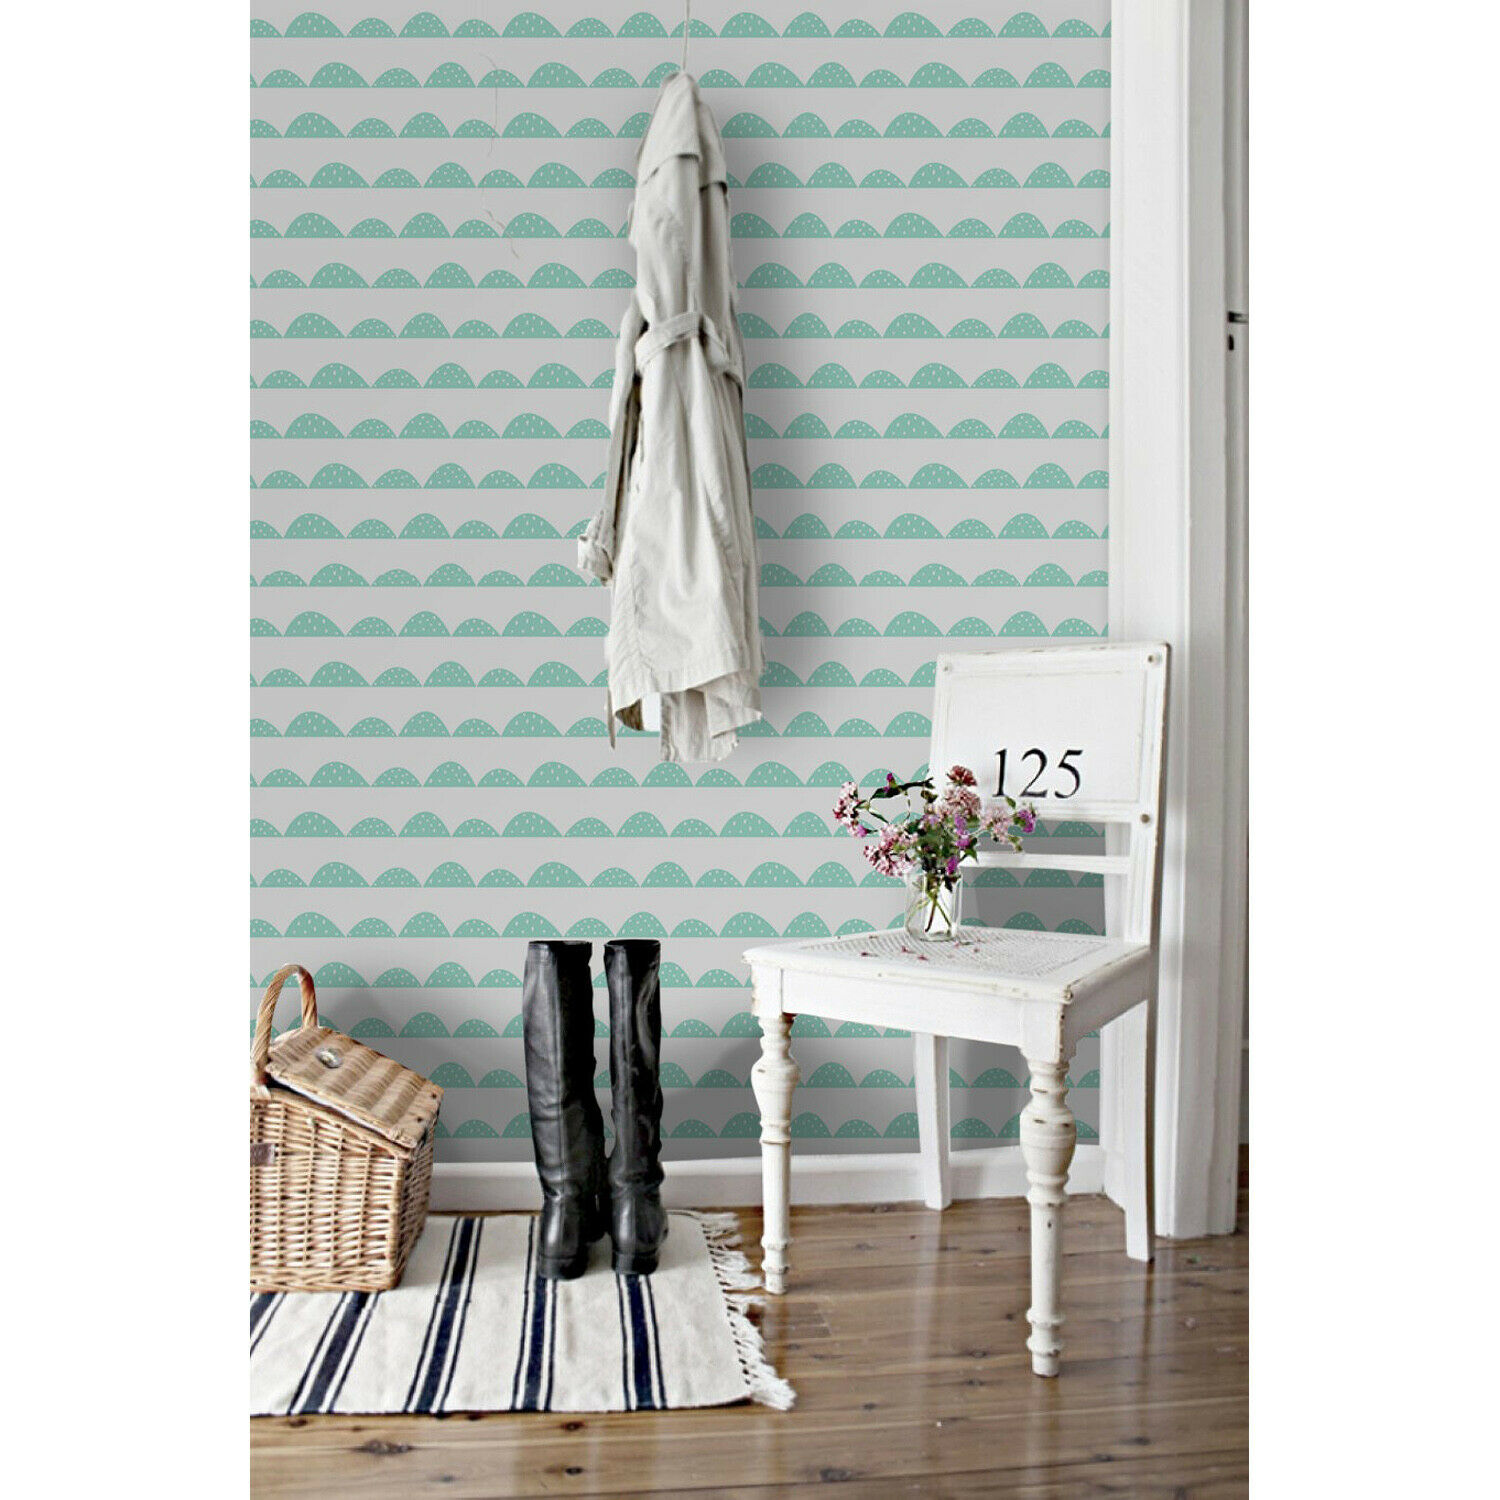 Mint hill rows Removable wallpaper Blau and Weiß wall mural wall decor